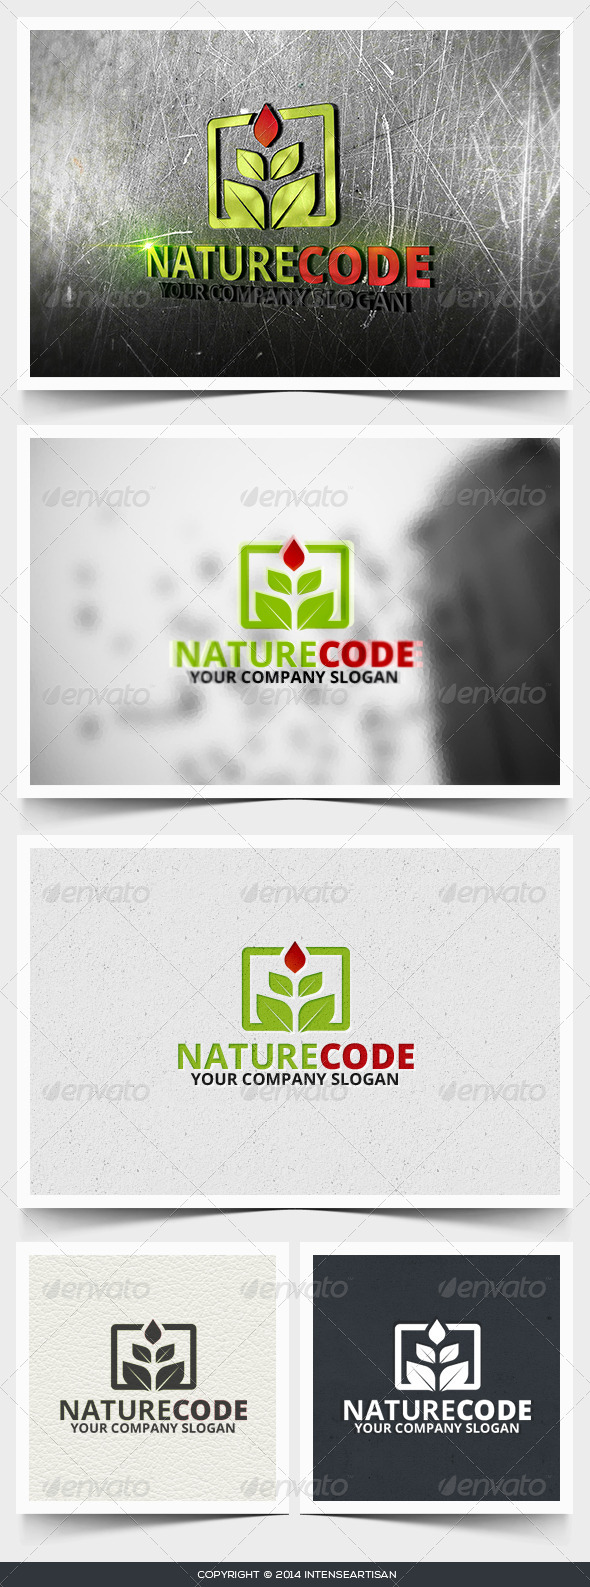 Nature Code Logo Template - Nature Logo Templates